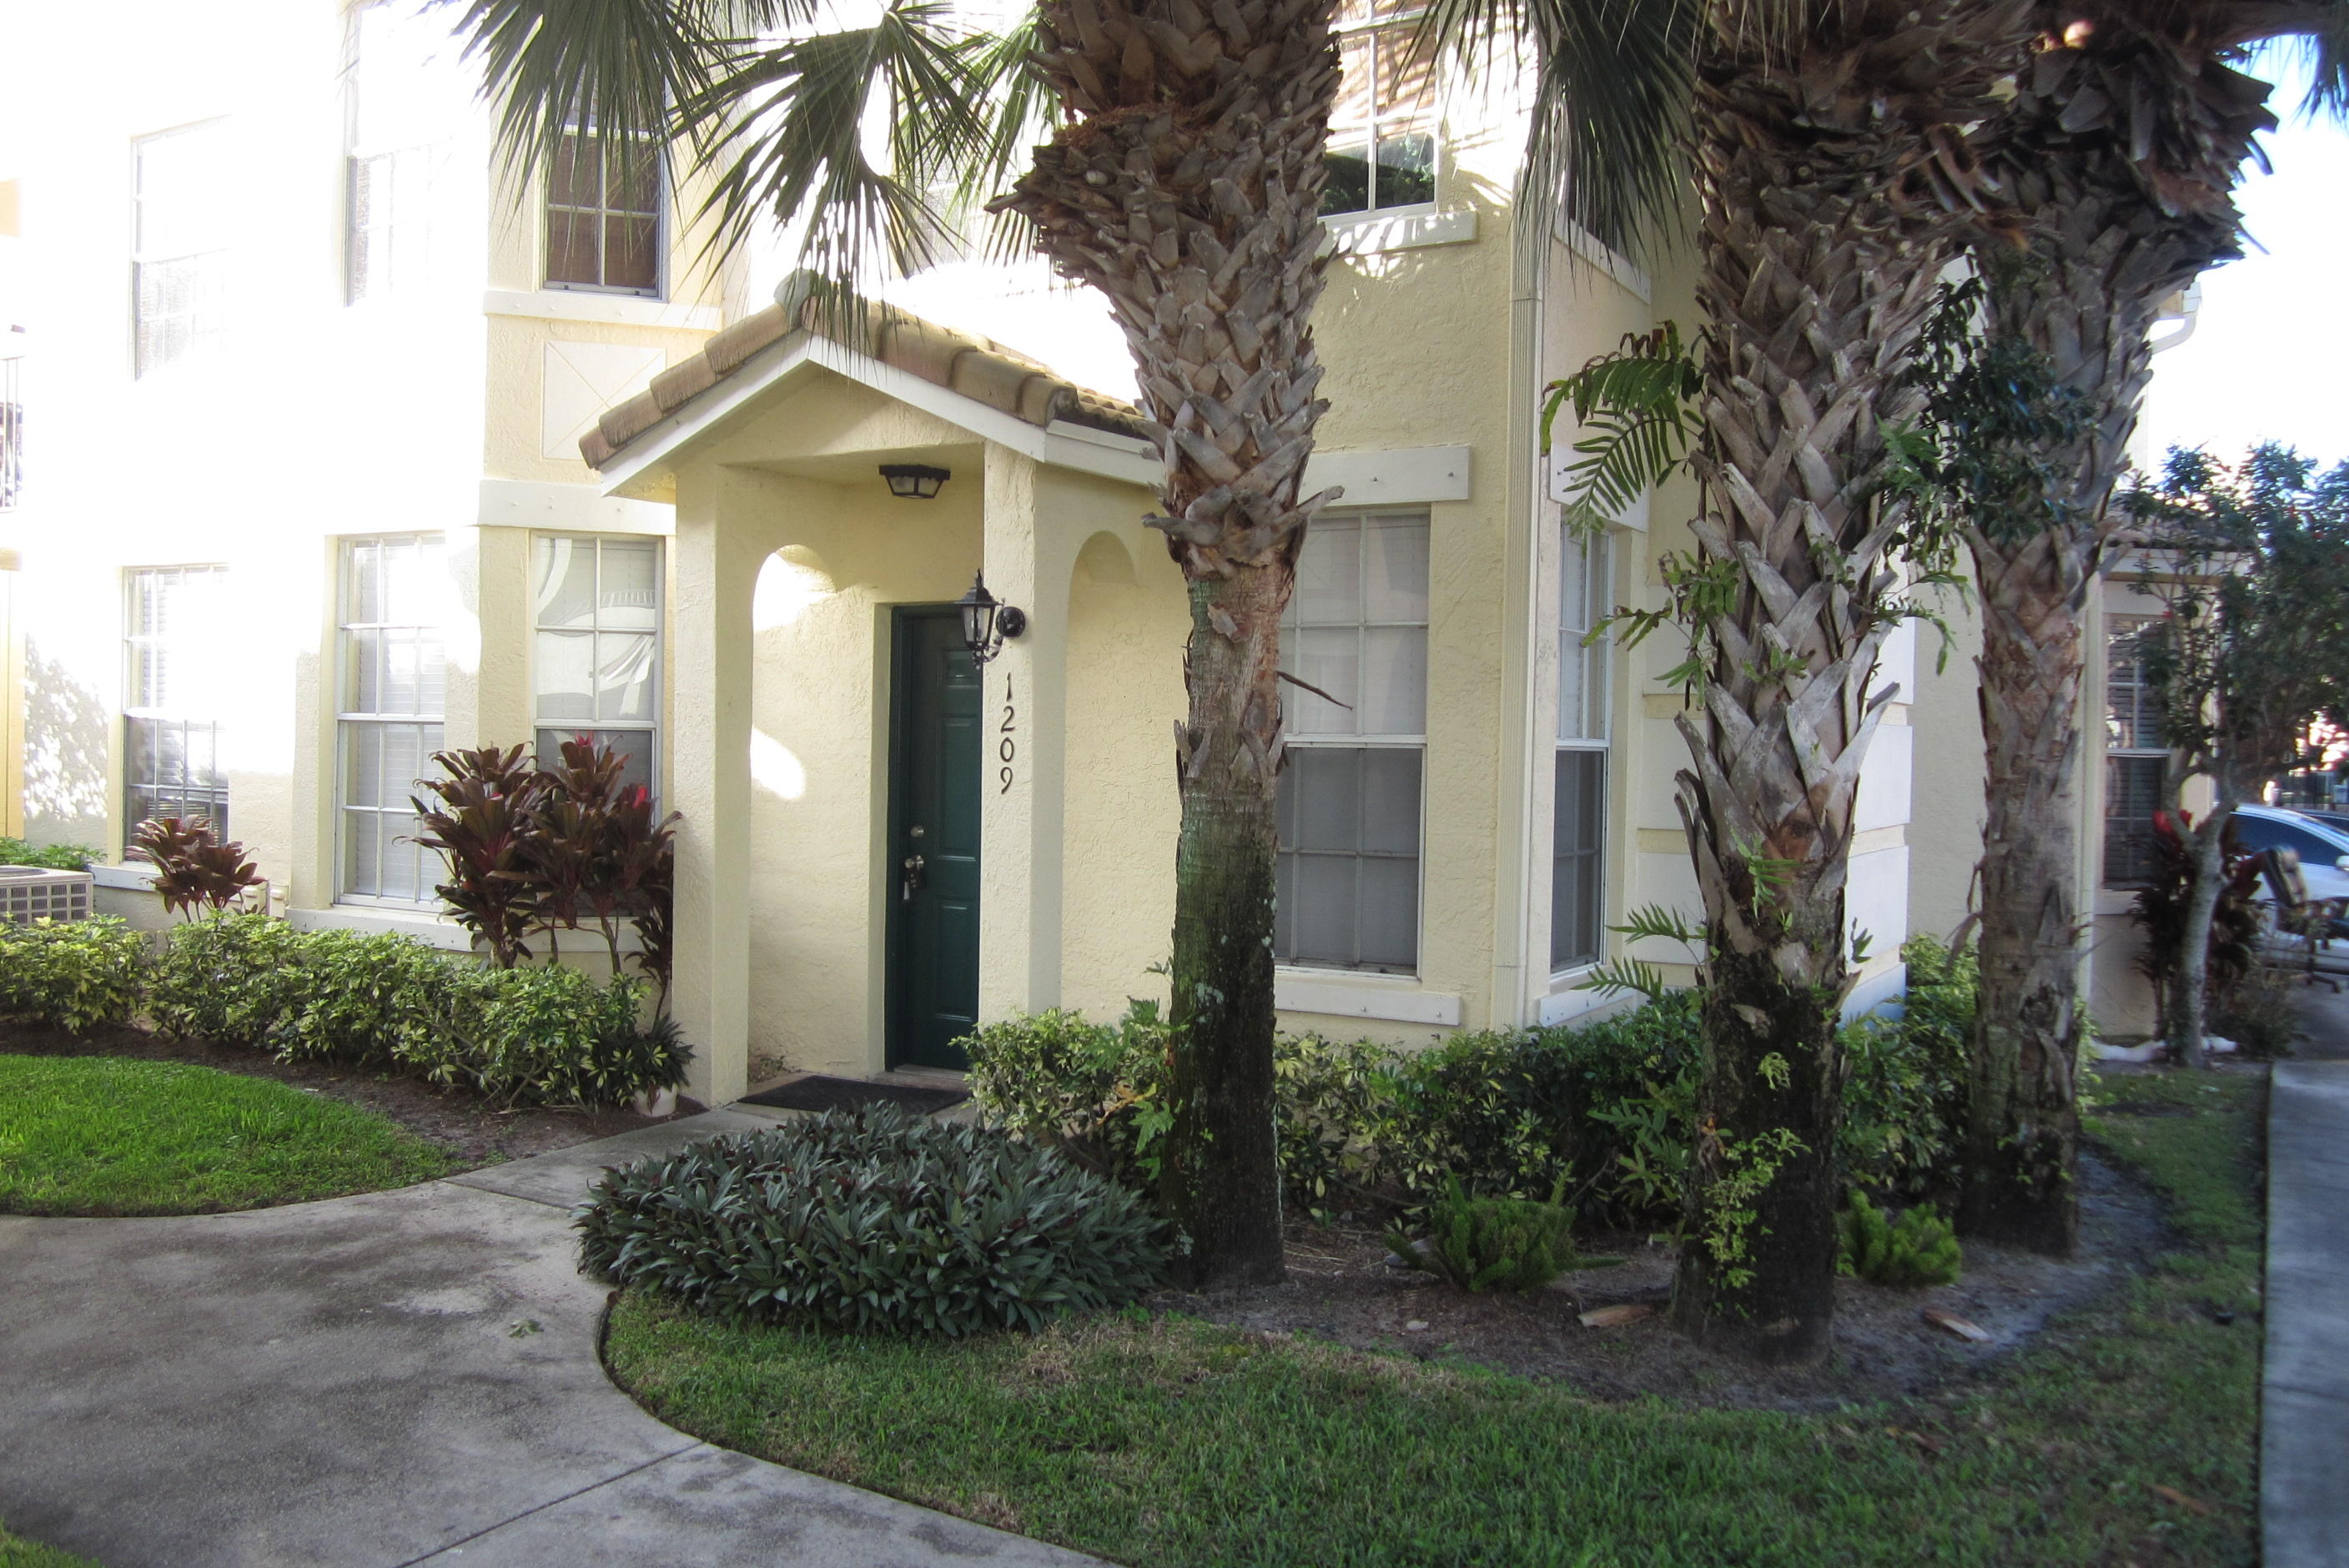 Huge 3 bedroom 2 bath condo with 2 car garage. great square footage, tiled throughout, recently painted, remodeled kitchen with new cabinets, granite and appliances, new a/c. Wonderful location just minutes from shopping and I-95. Great closet space, community pool, jacuzzi, playgorund, fitness and more. Also for rent at $1950/mo